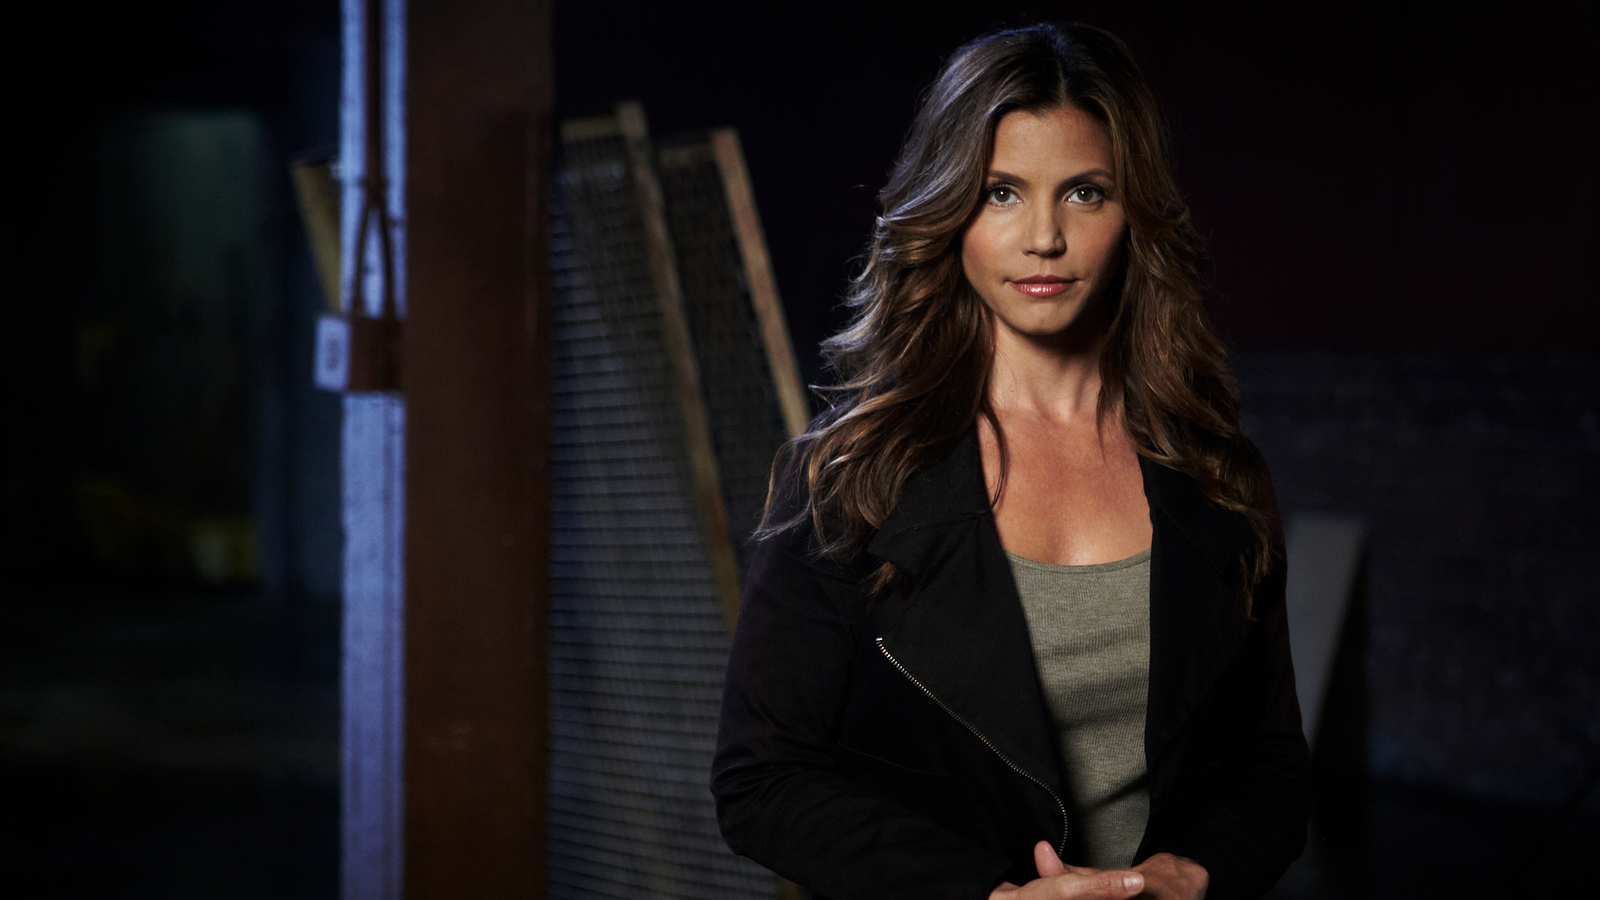 A LITTLE AFTER 1 AM ON AUG 15 1991 three friends arrived at Torrey Pines State Beach near San Diego to go for a swim Although Charisma Carpenter